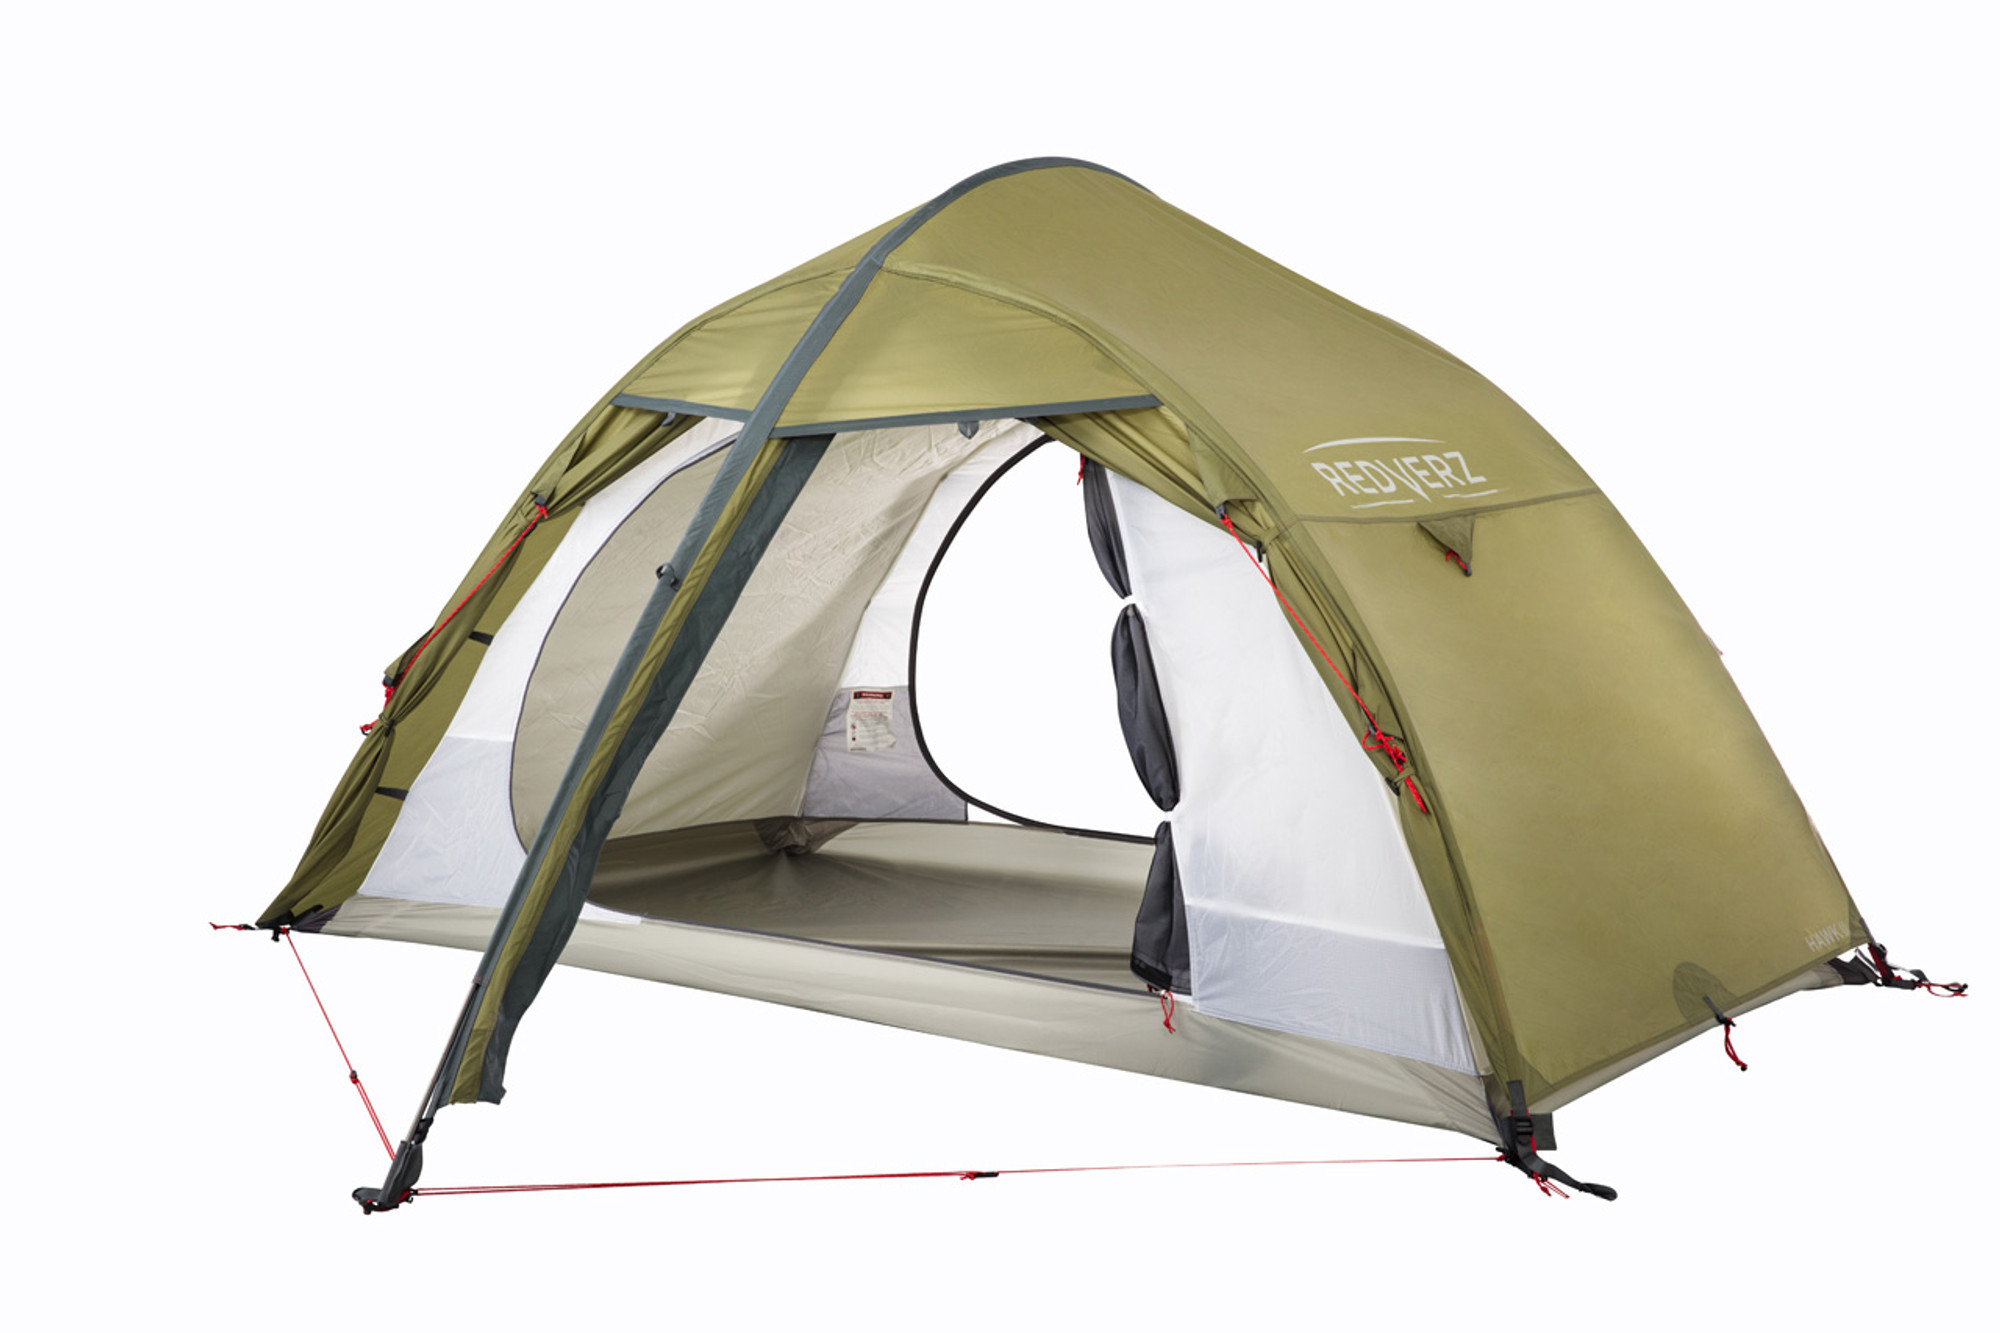 The Hawk II Mountaineering Tent from Redverz Gear. Shown with vestibule doors completely open and ...  sc 1 st  Redverz Gear & Redverz Hawk II Mountaineering Tent - A 4 Season 2 Person ...